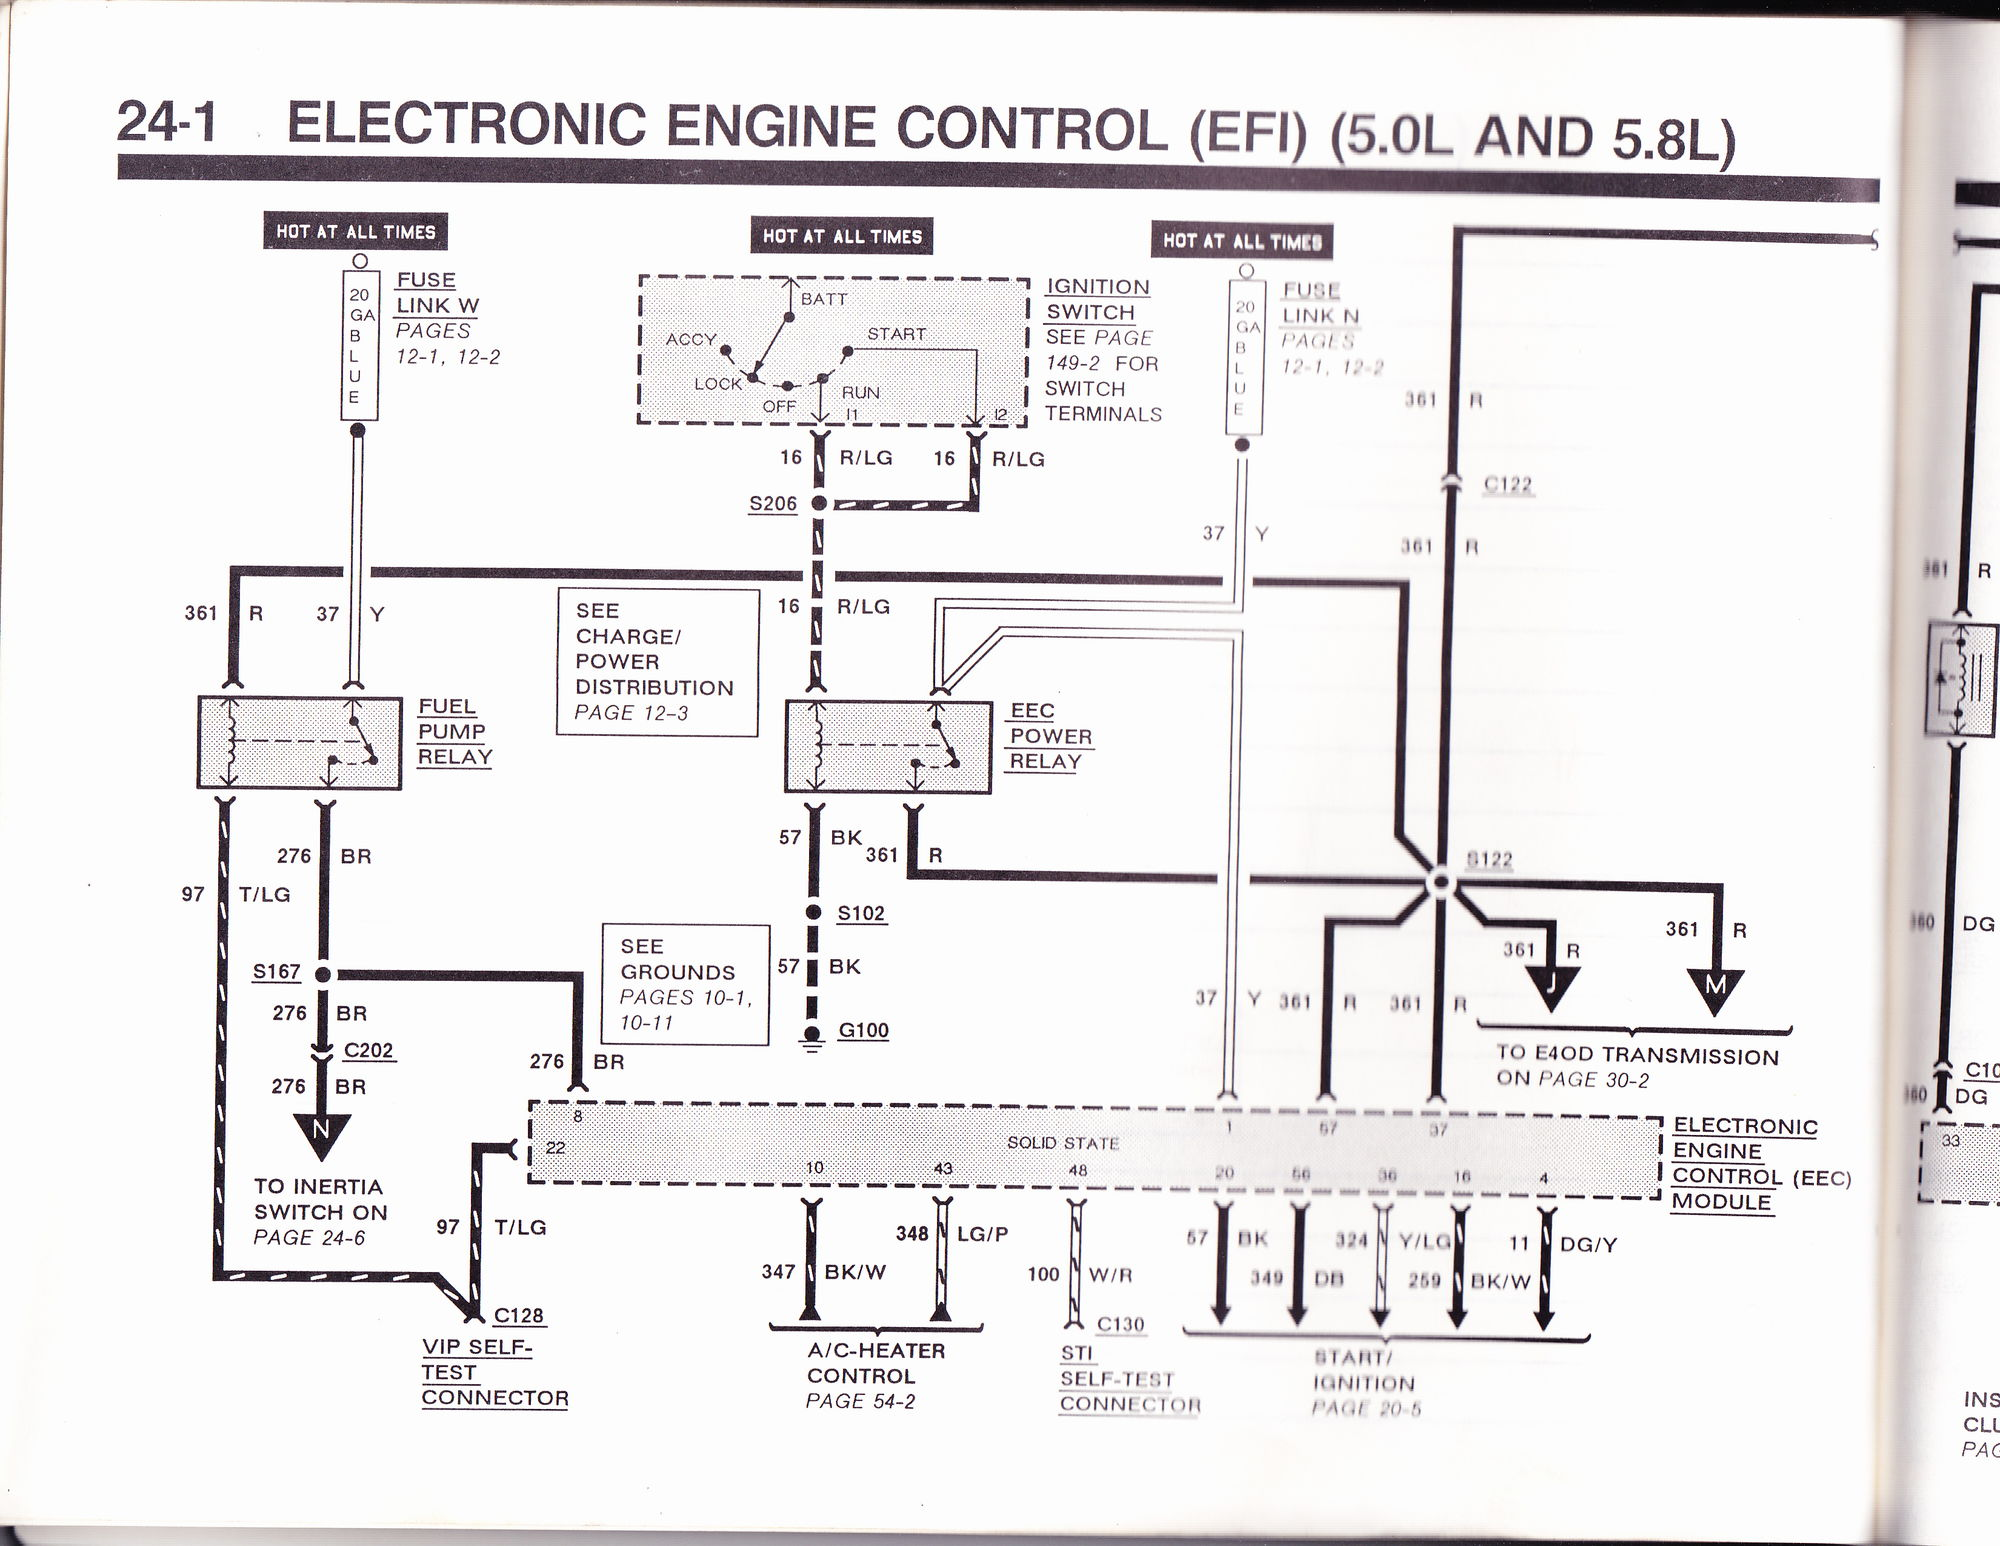 1990 f150 5.0 4wd Fuse problem from Alternator or ?? See